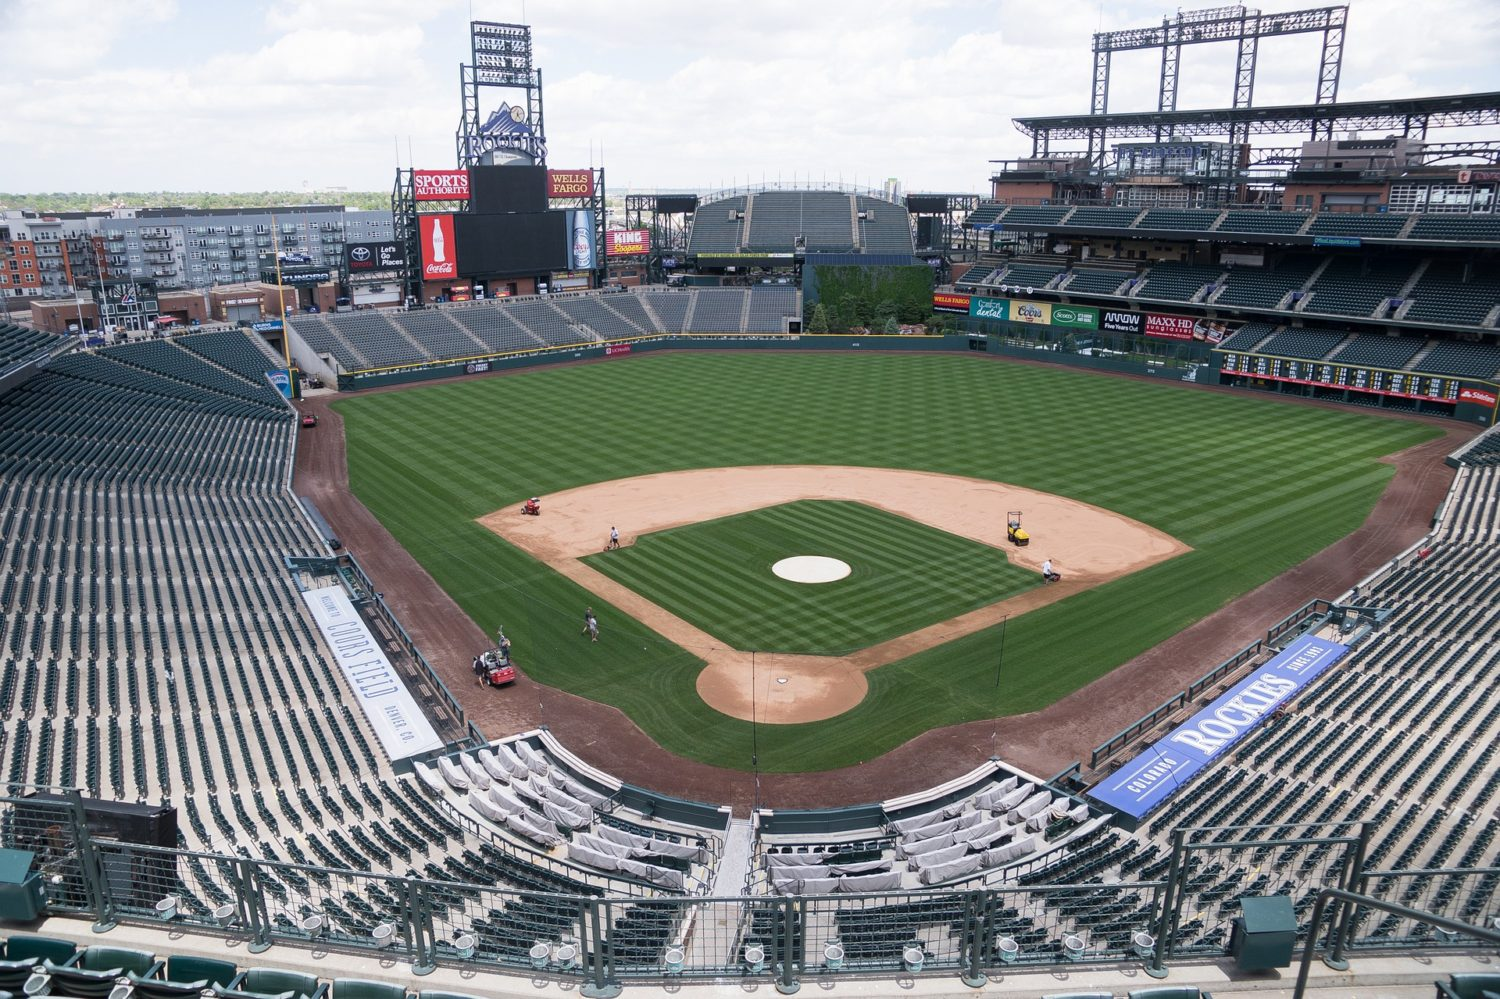 Coors Field baseball stadium, Denver, Colorado